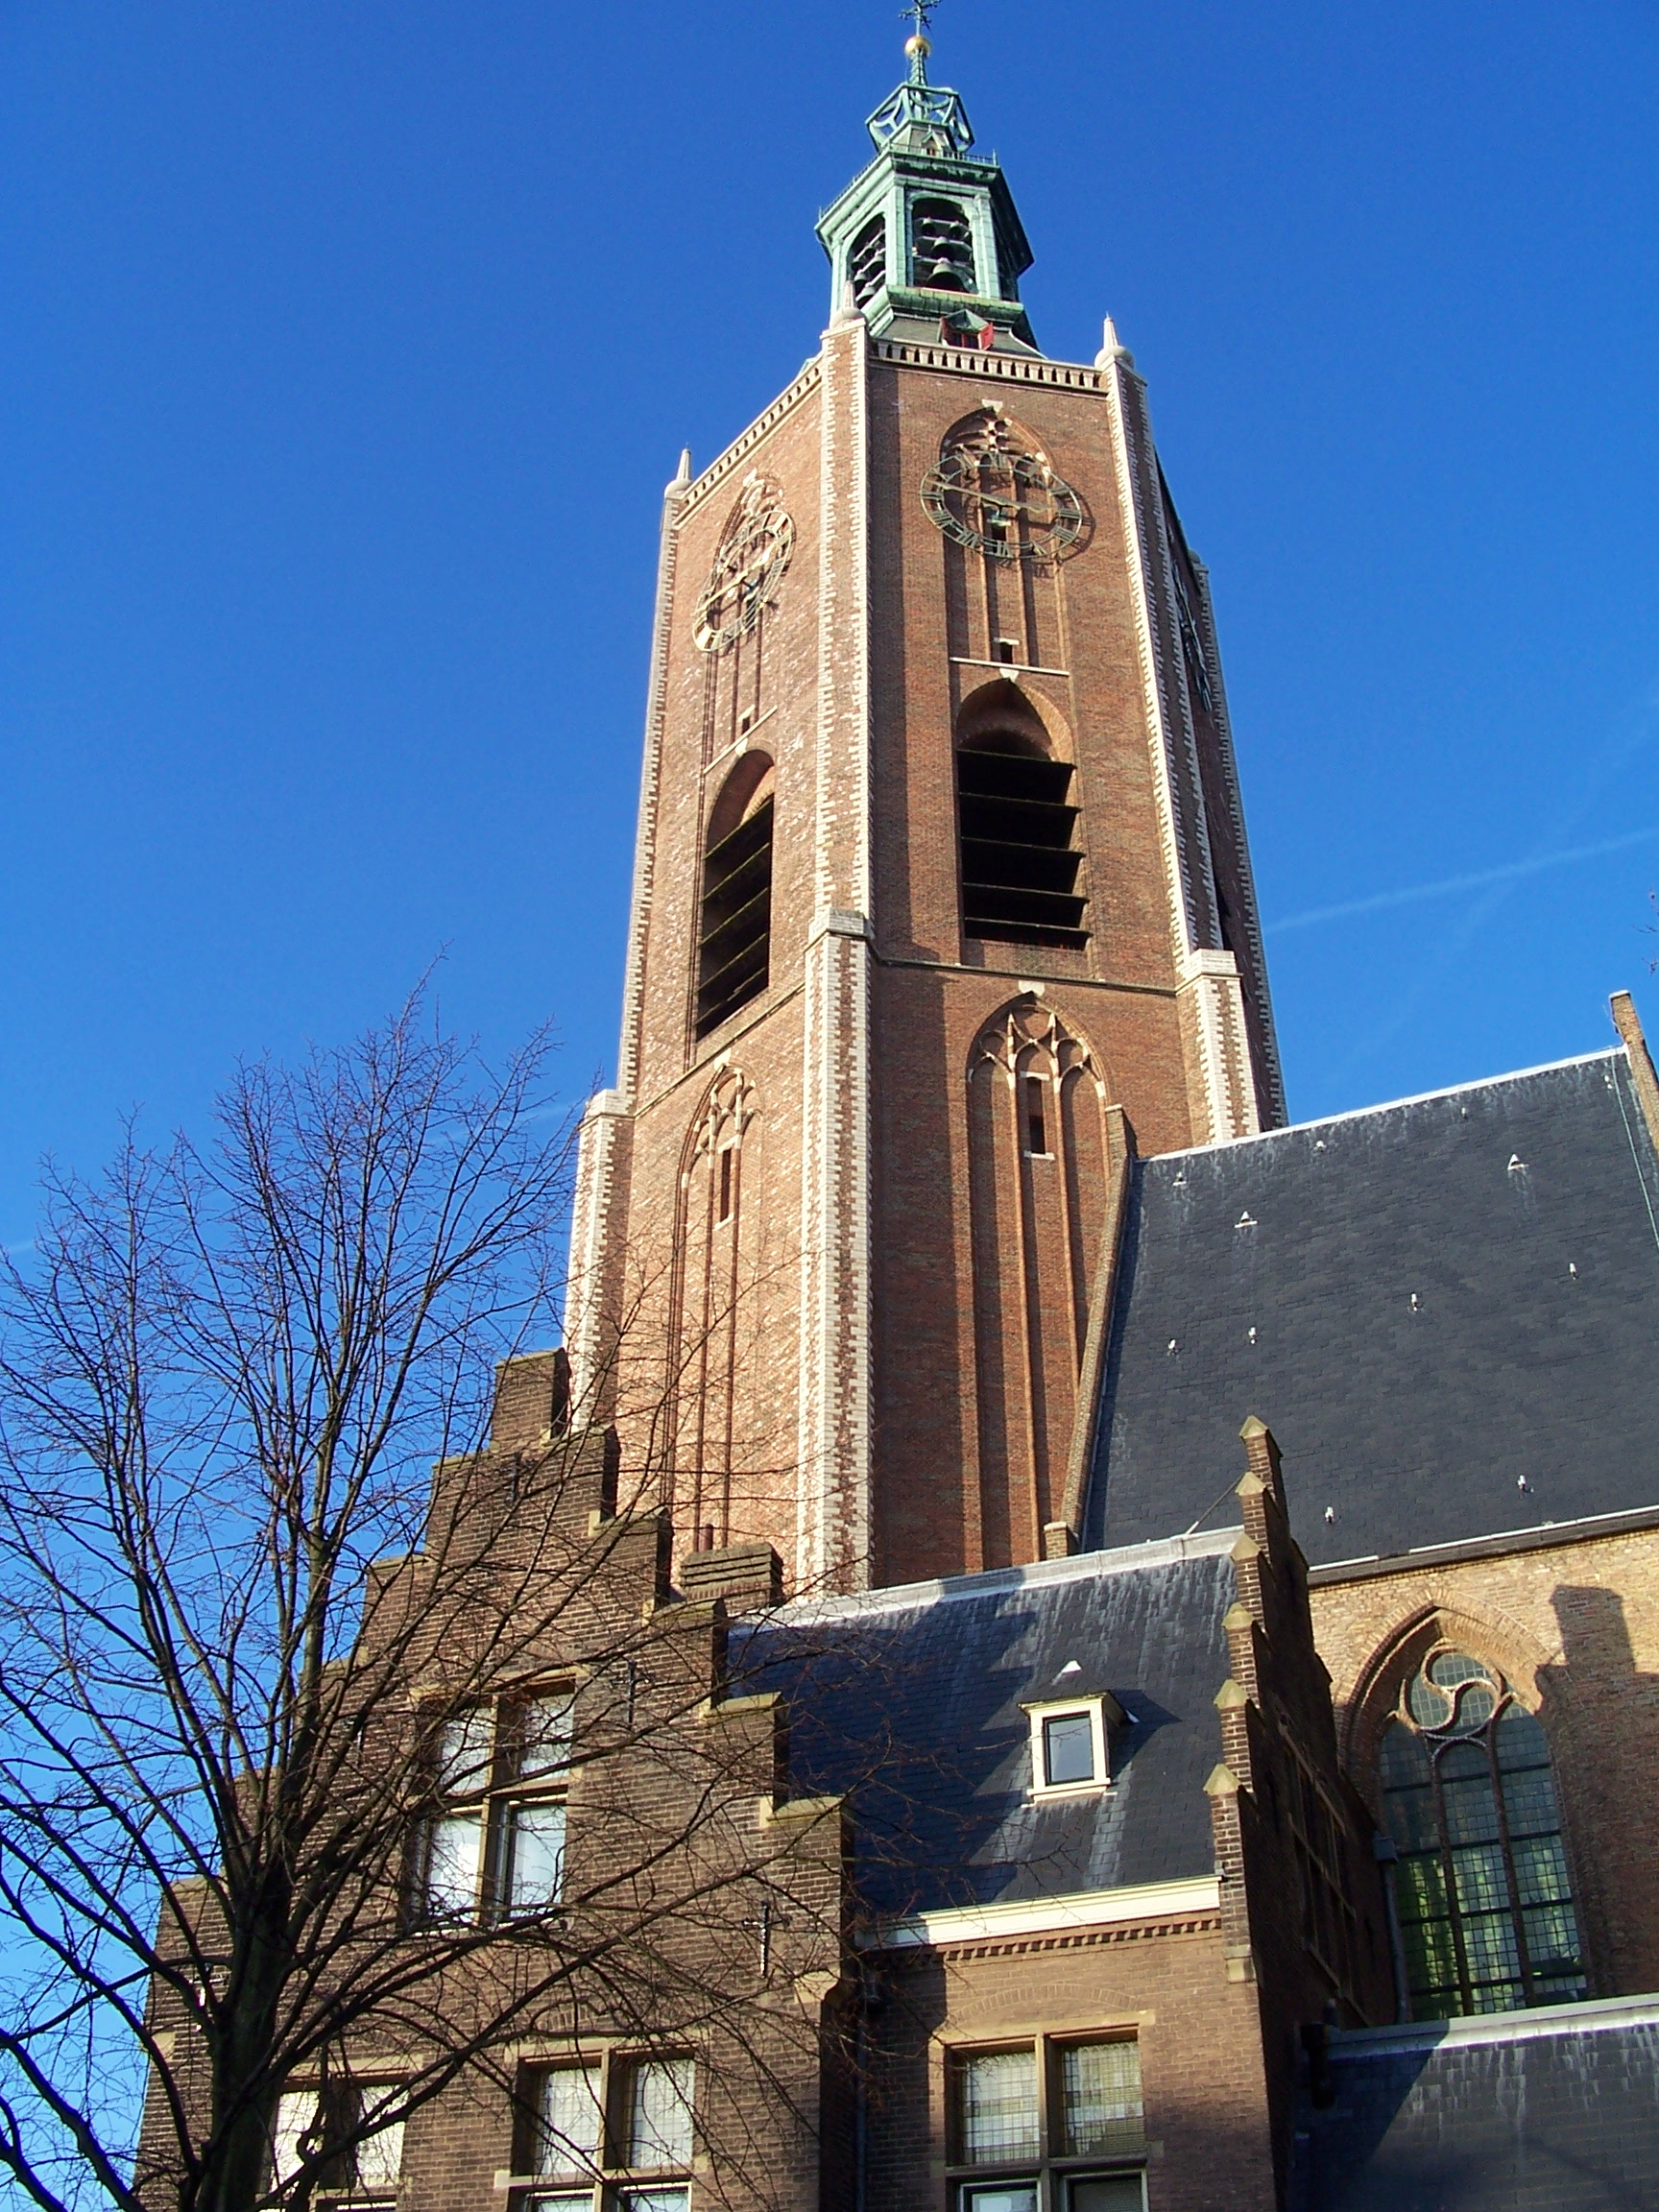 Grote_of_Sint-Jacobskerk_(The_Hague).JPG